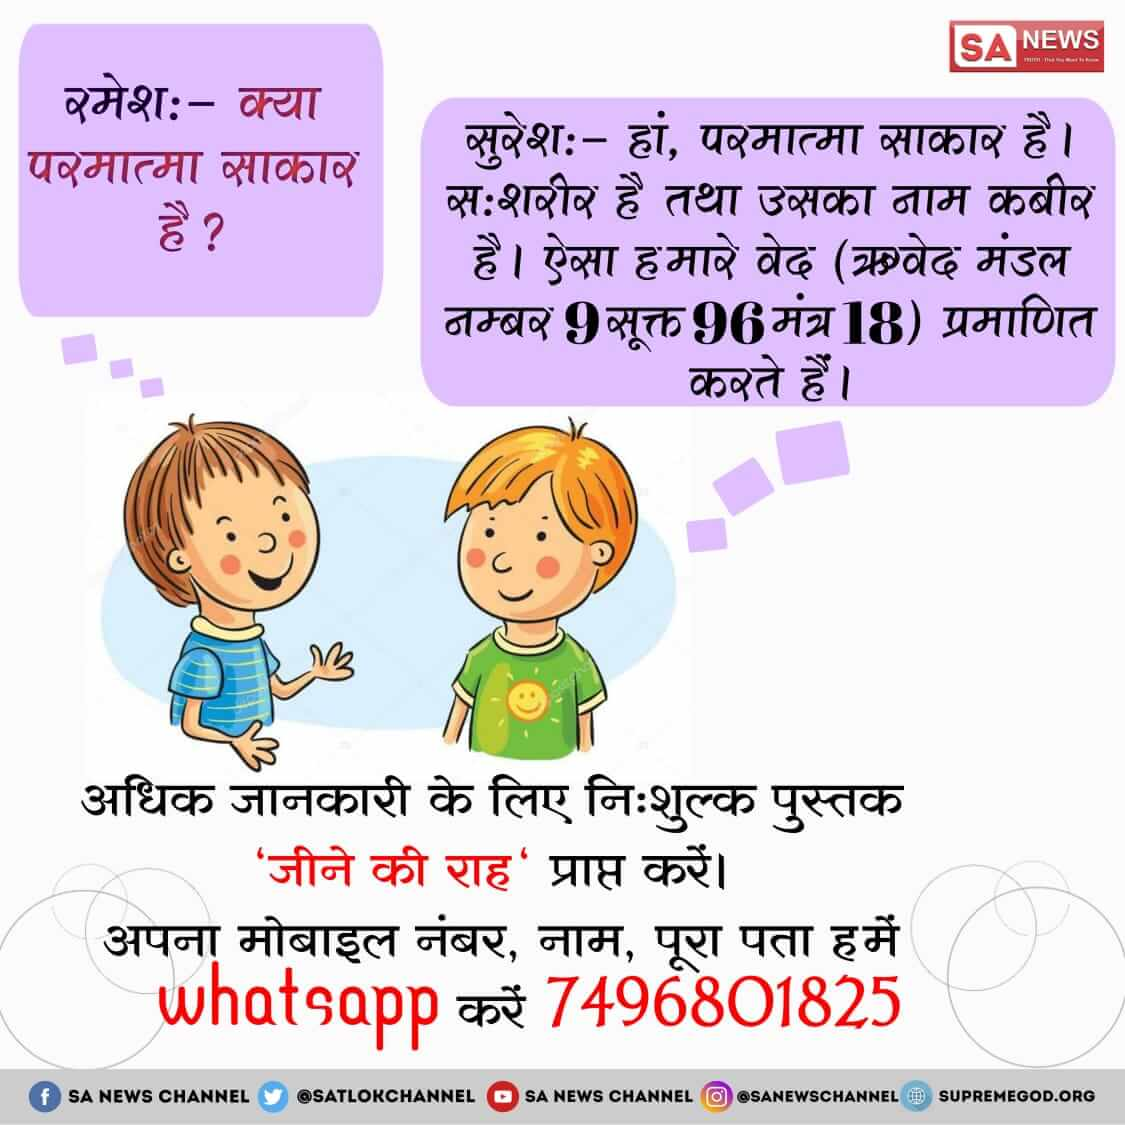 #FridayFeeling  #ये_ज्ञान_अनमोल_है According to Rigveda mandal 9 sukt 96 mantra 17 Supreme God intentionally appears in the form of an extraordinary human child and utters His Tatvgyan / True knowledge through poems. His name is Kabir to find out more  Watch SADHNA TV 07:30 PM <br>http://pic.twitter.com/F8qDrIy82H